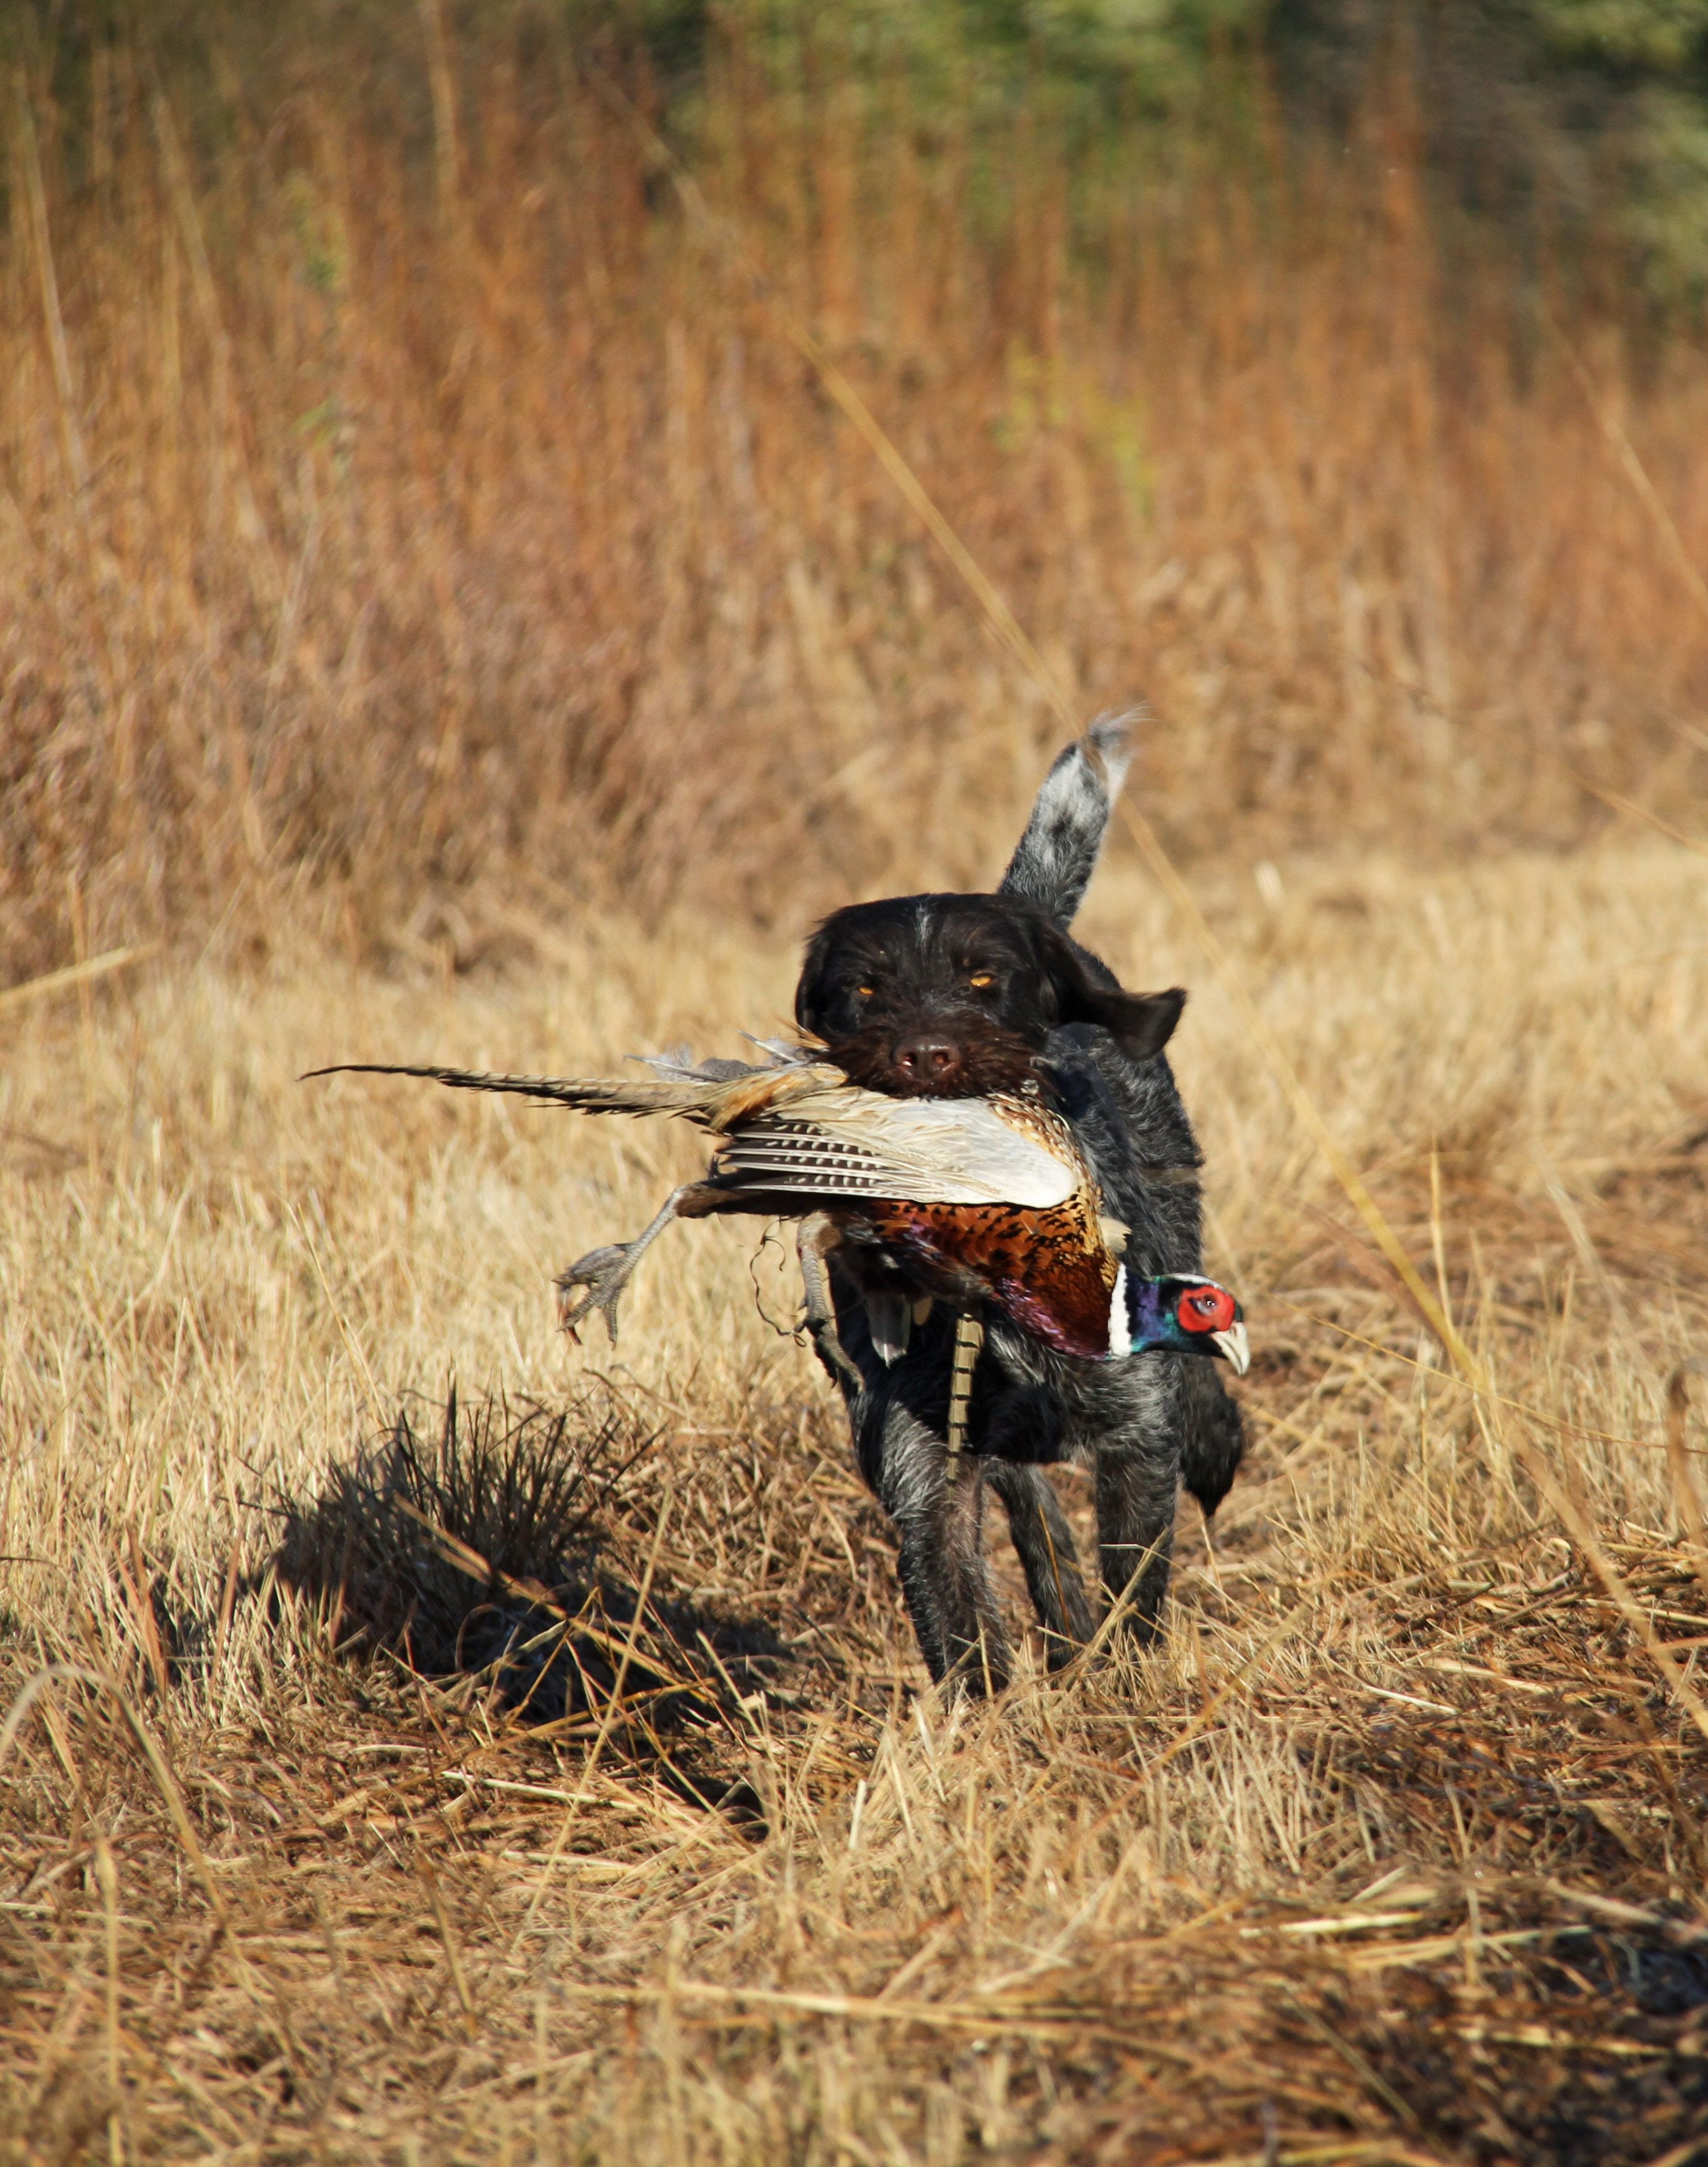 Bird Dog Training More Info Could Be Found At The Image Url